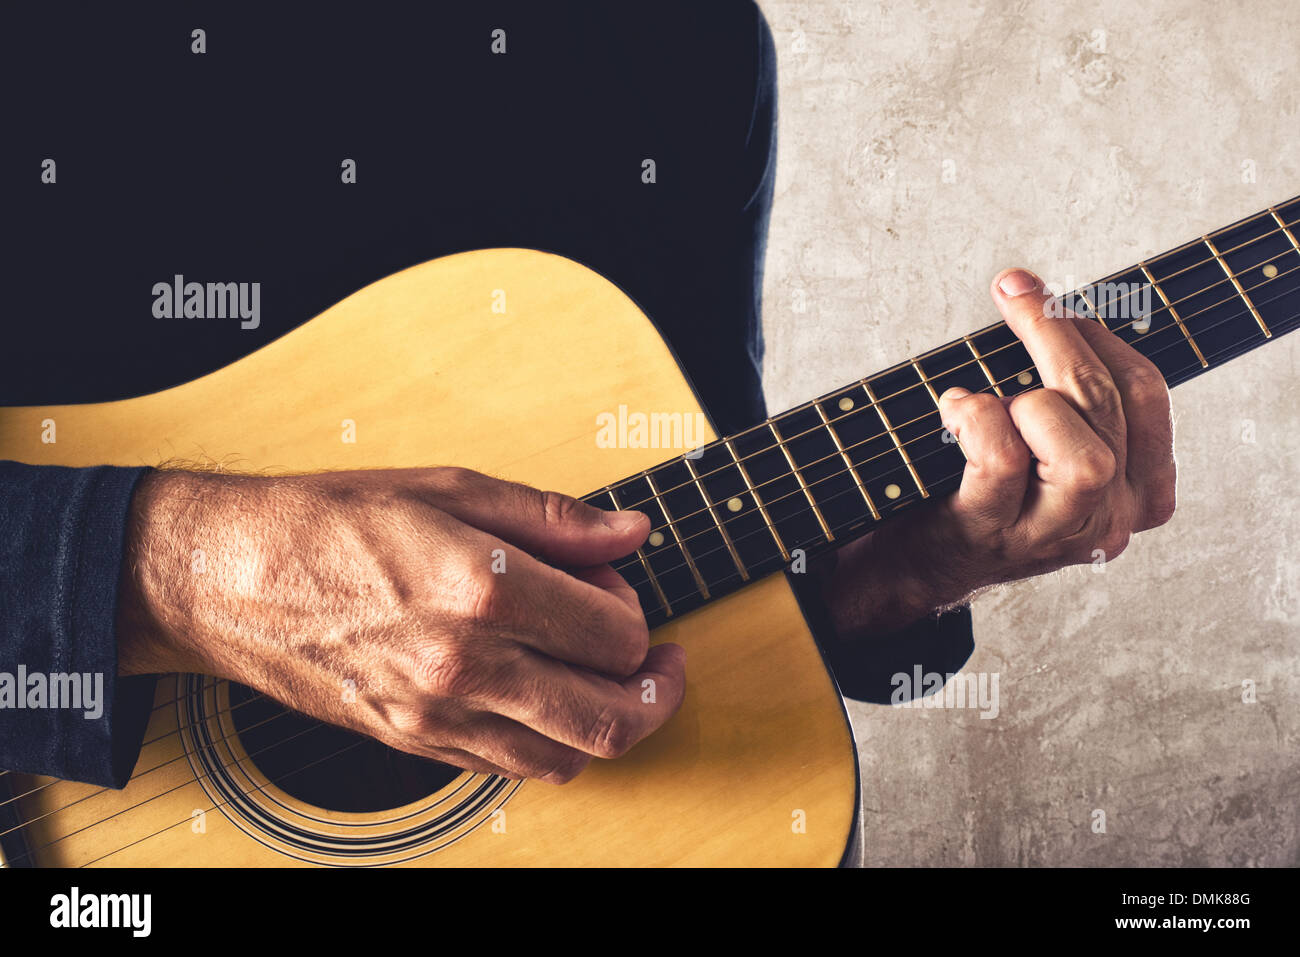 Man playing acoustic guitar, unplugged performance. - Stock Image